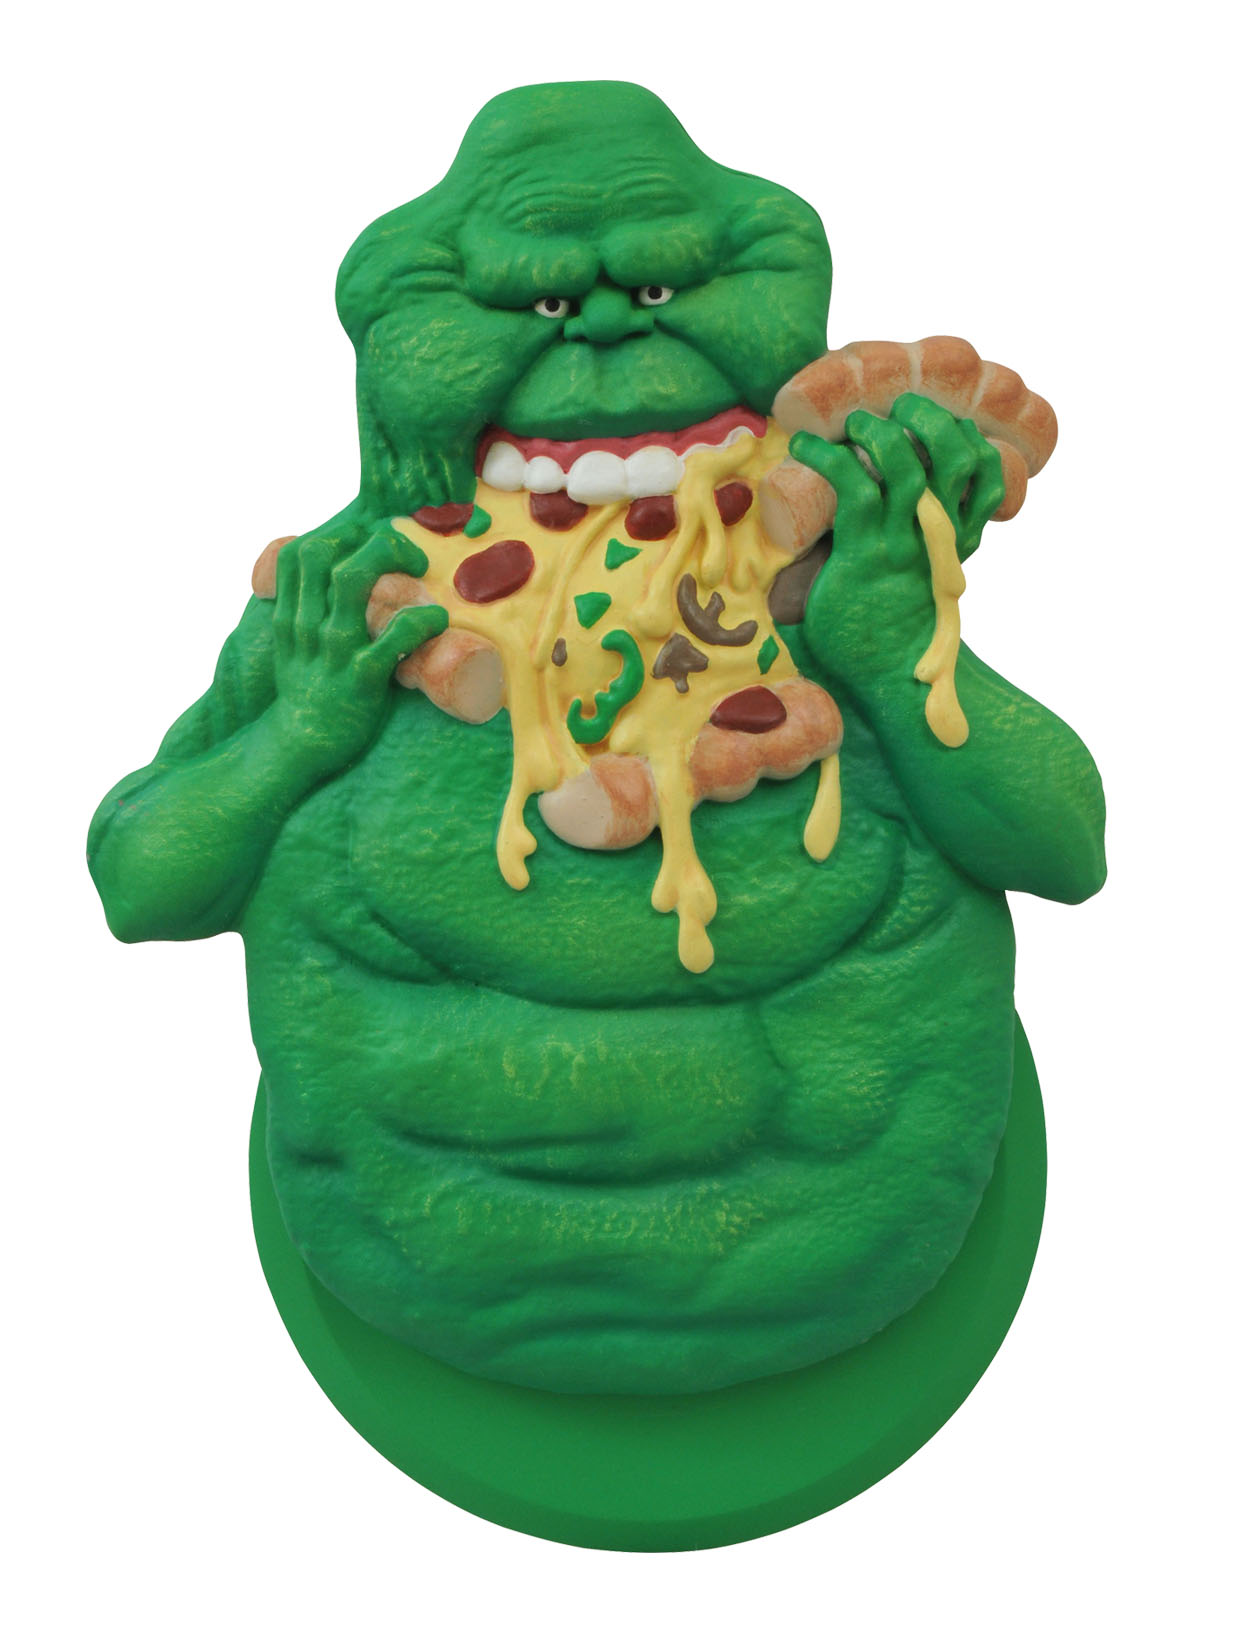 diamond-select-slimer-pizza-cutter-toyslife